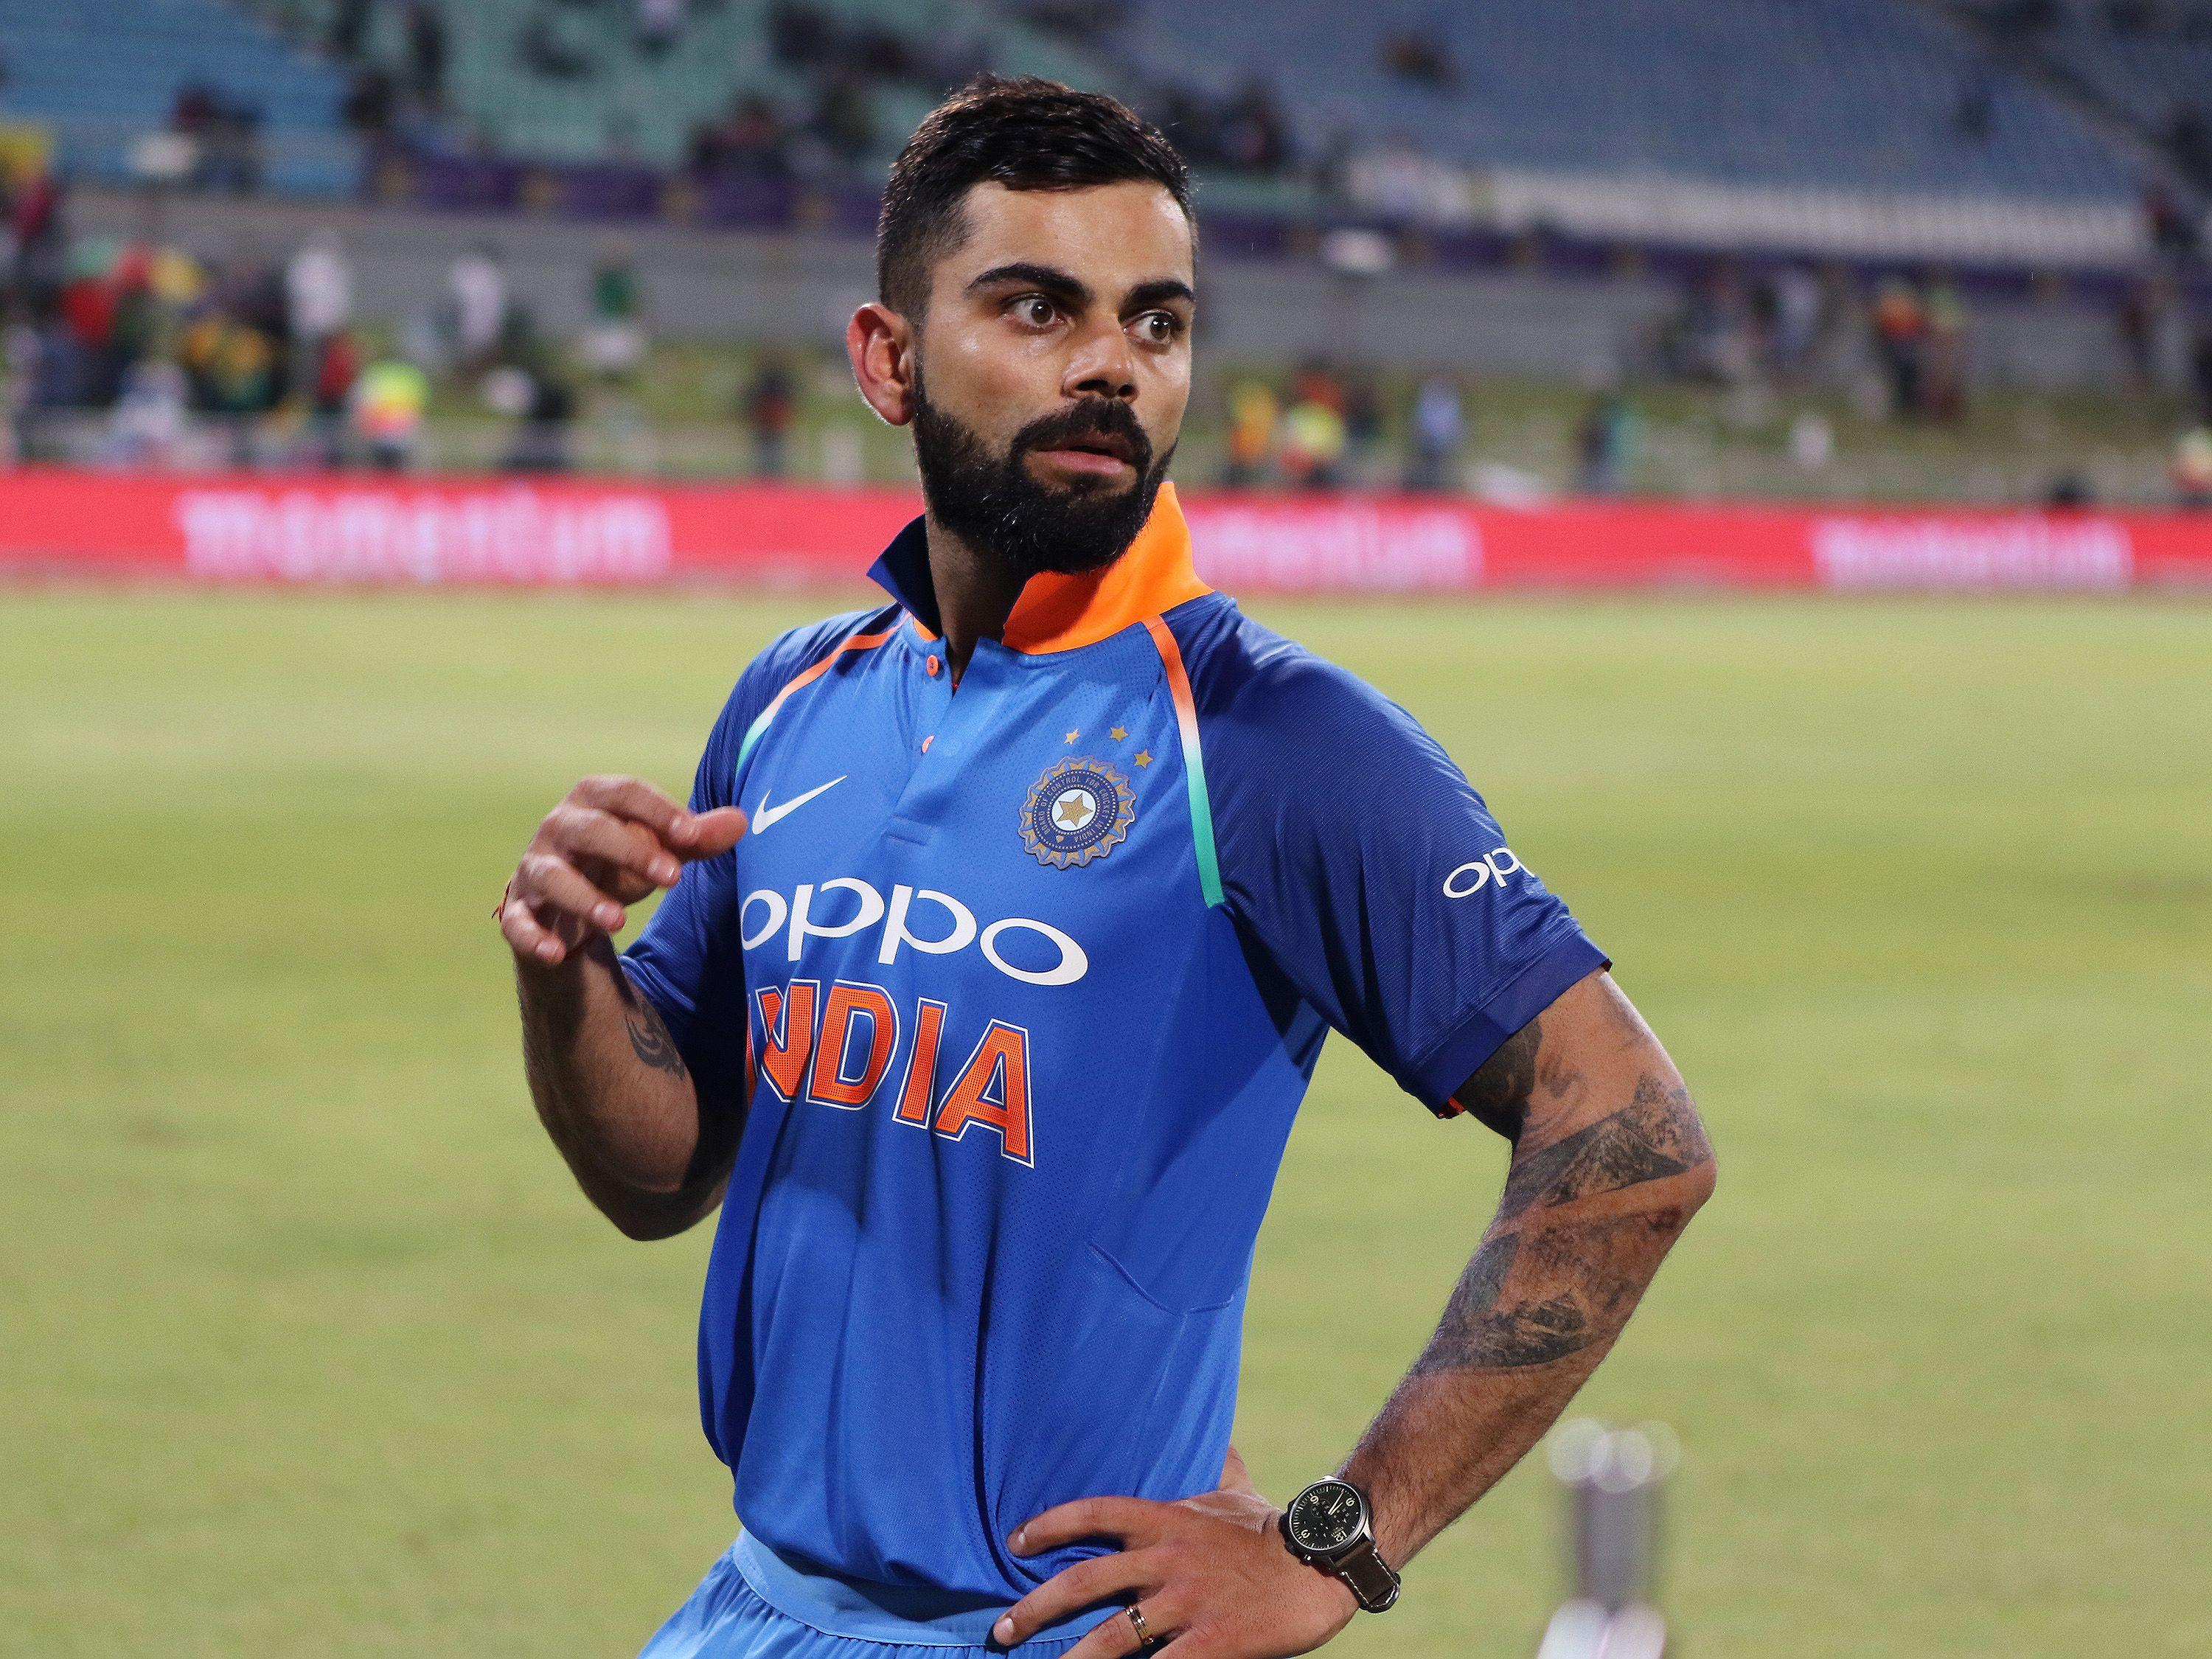 Virat Kohli's India side face Ireland in two T20s this week